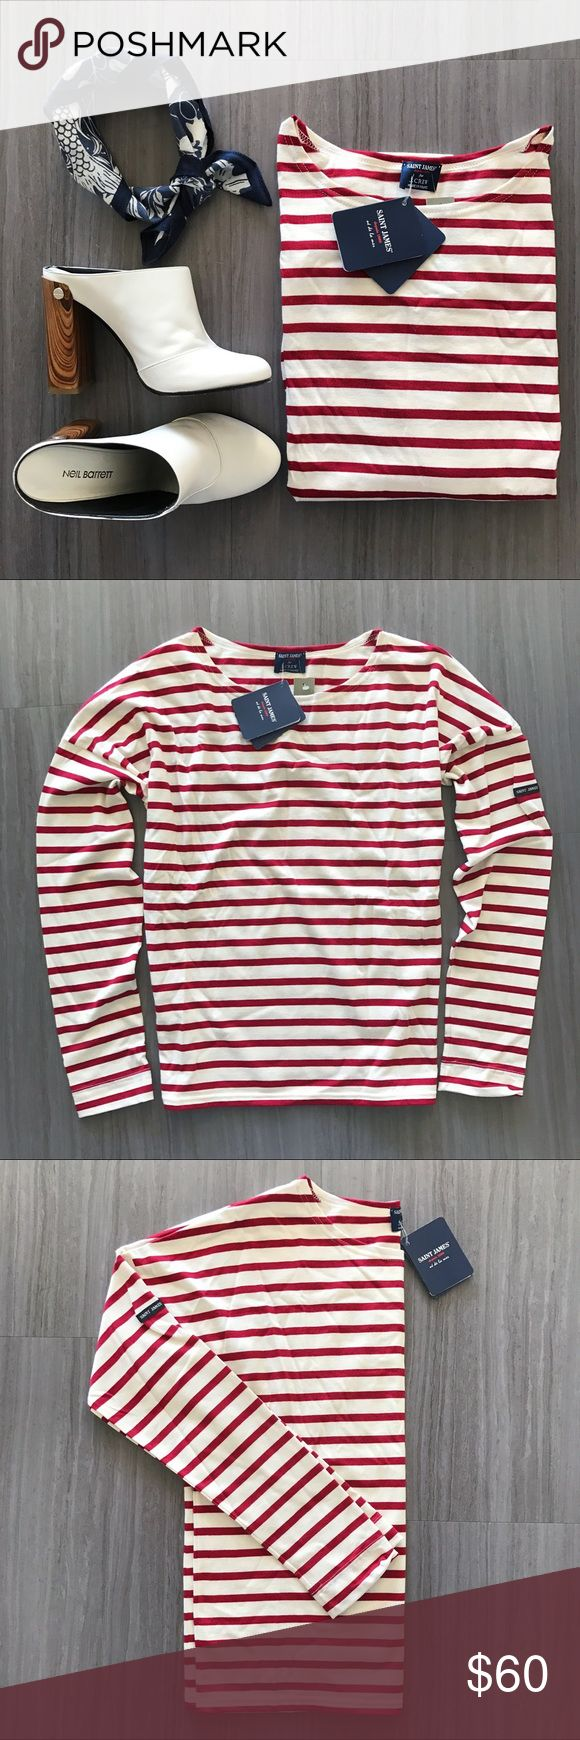 Saint James slouchy striped top This red and off-white striped top is perfectly slouchy and oh-so-soft. This color combo was done in collaboration with J. Crew. Model (4th) photo shows fit. Brand new with tags! Saint James Tops